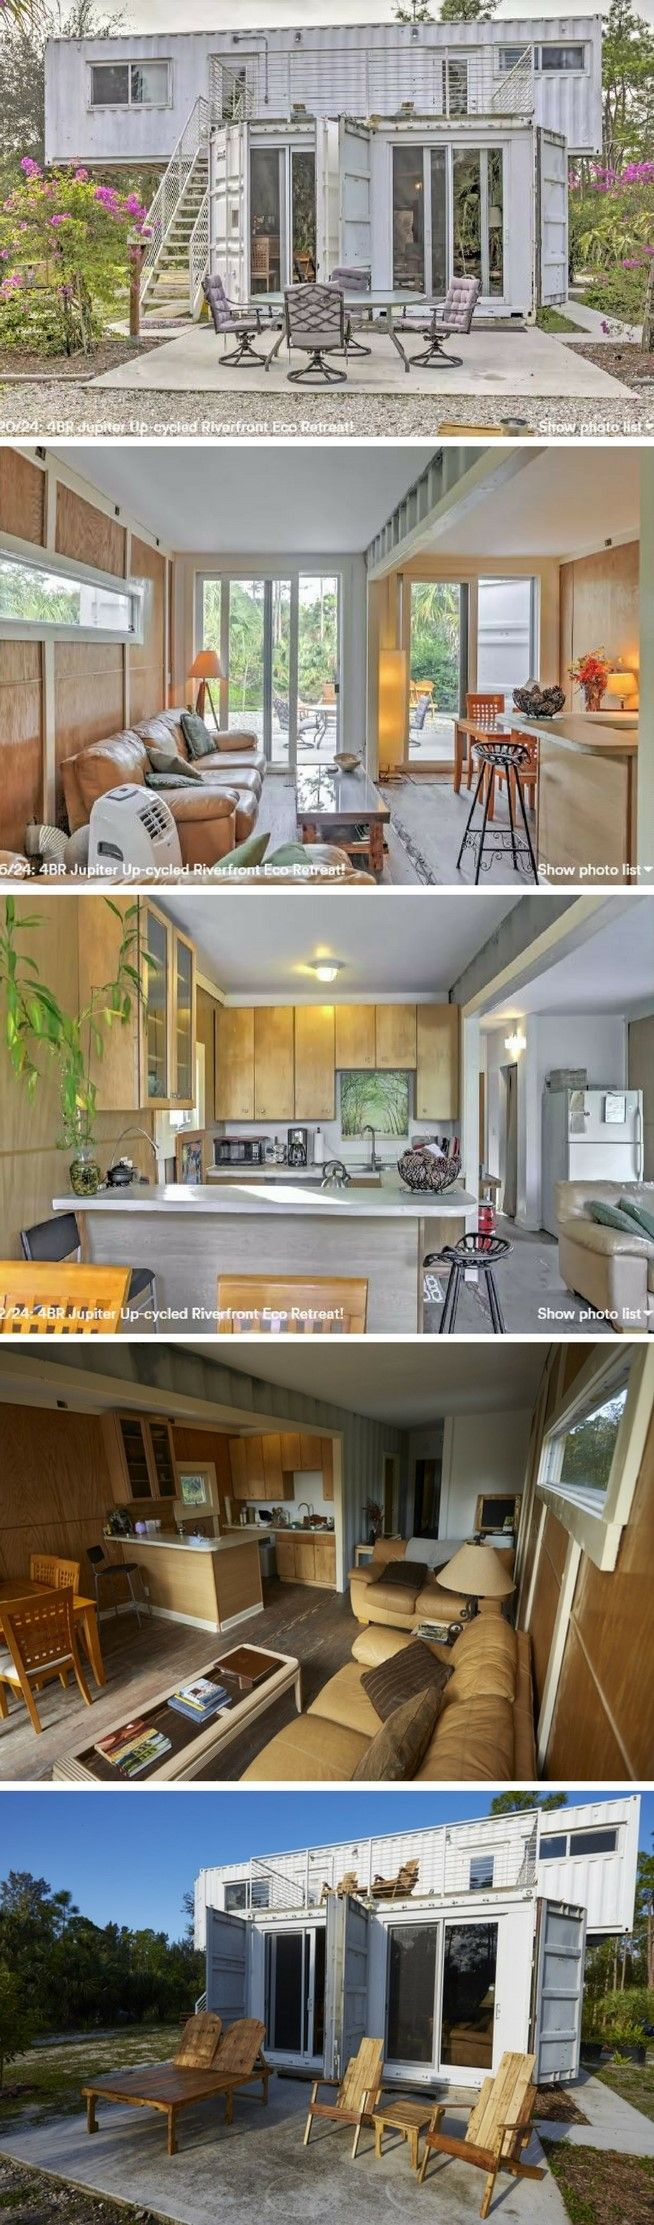 Container House - Container House - ECO RETREAT CONTAINER HOME Who Else Wants Simple Step-By-Step Plans To Design And Build A Container Home From Scratch? - Who Else Wants Simple Step-By-Step Plans To Design And Build A Container Home From Scratch?